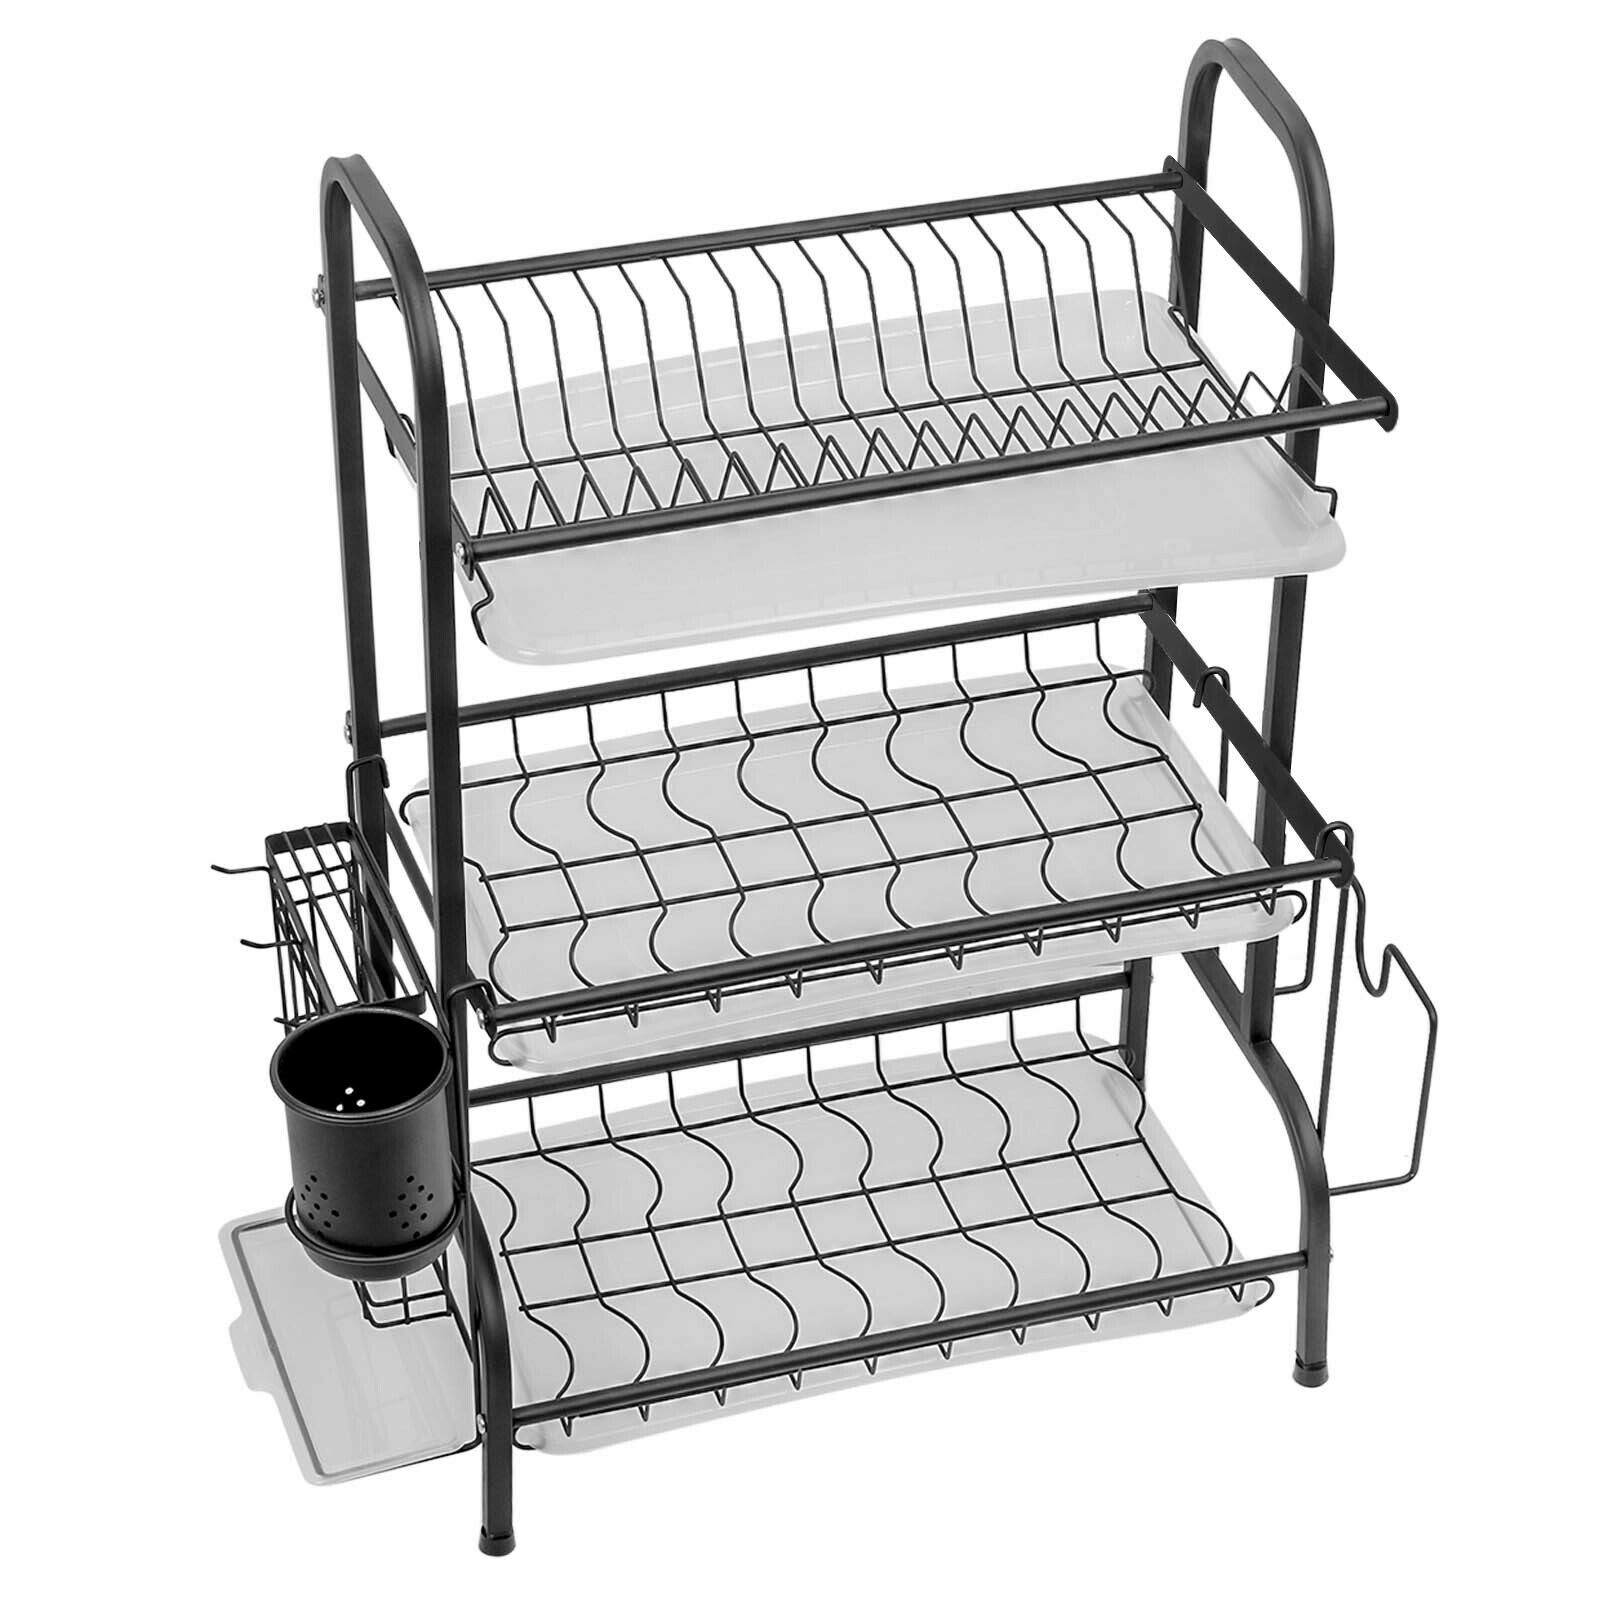 2-3 Tier Dish Drainer Cutlery Rack Bowl Plate Draining Cup Holder with Drip Tray